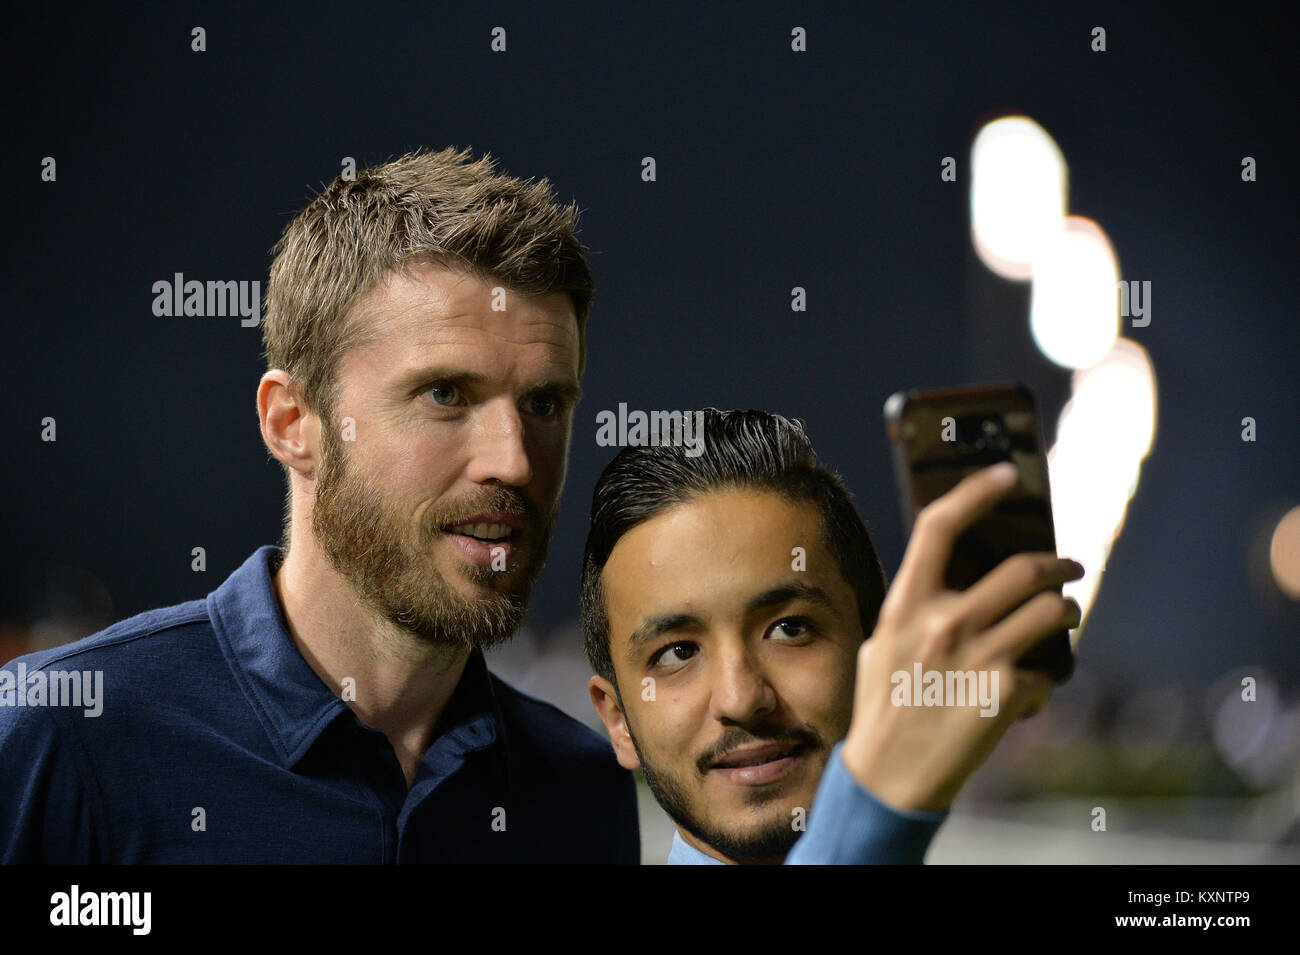 Dubai, UAE. 11th January 2018. Michael Carrick, captain of the Manchester United football club, interacts with a - Stock Image